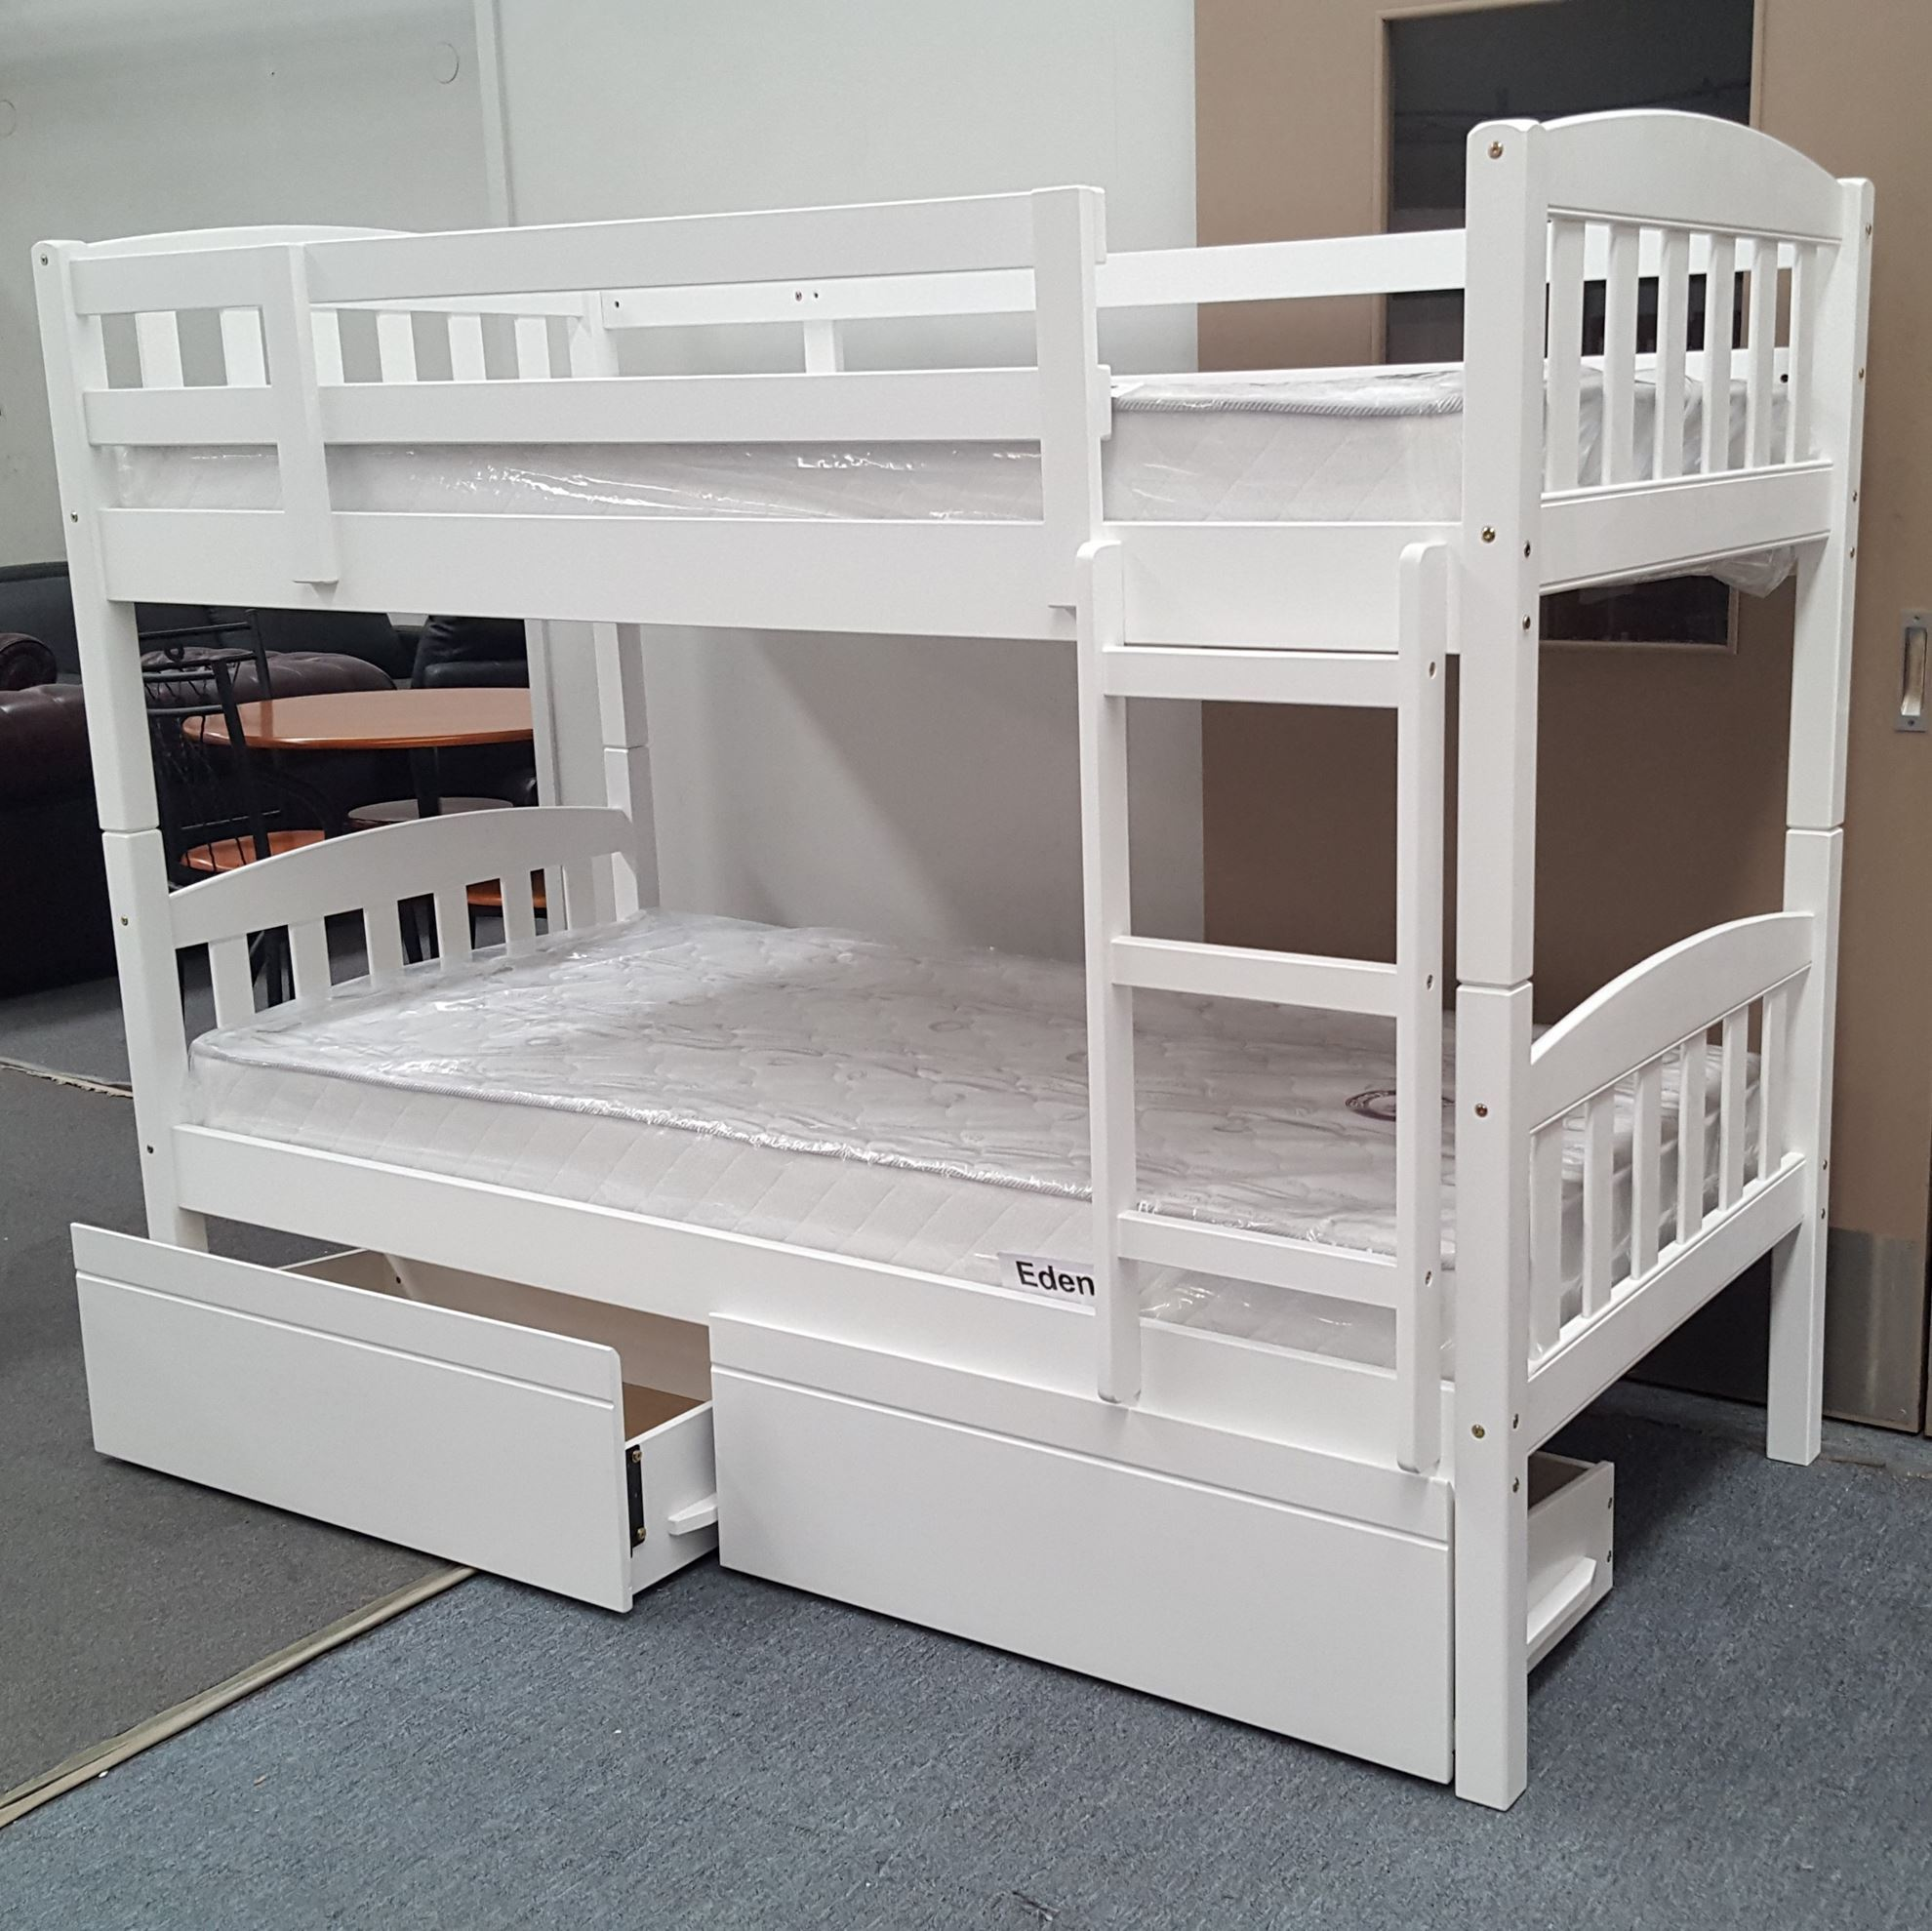 Picture of: Furniture Place Miki King Single Bunk Bed With Drawers And Mattresses Solid Hard Wood In White Colour